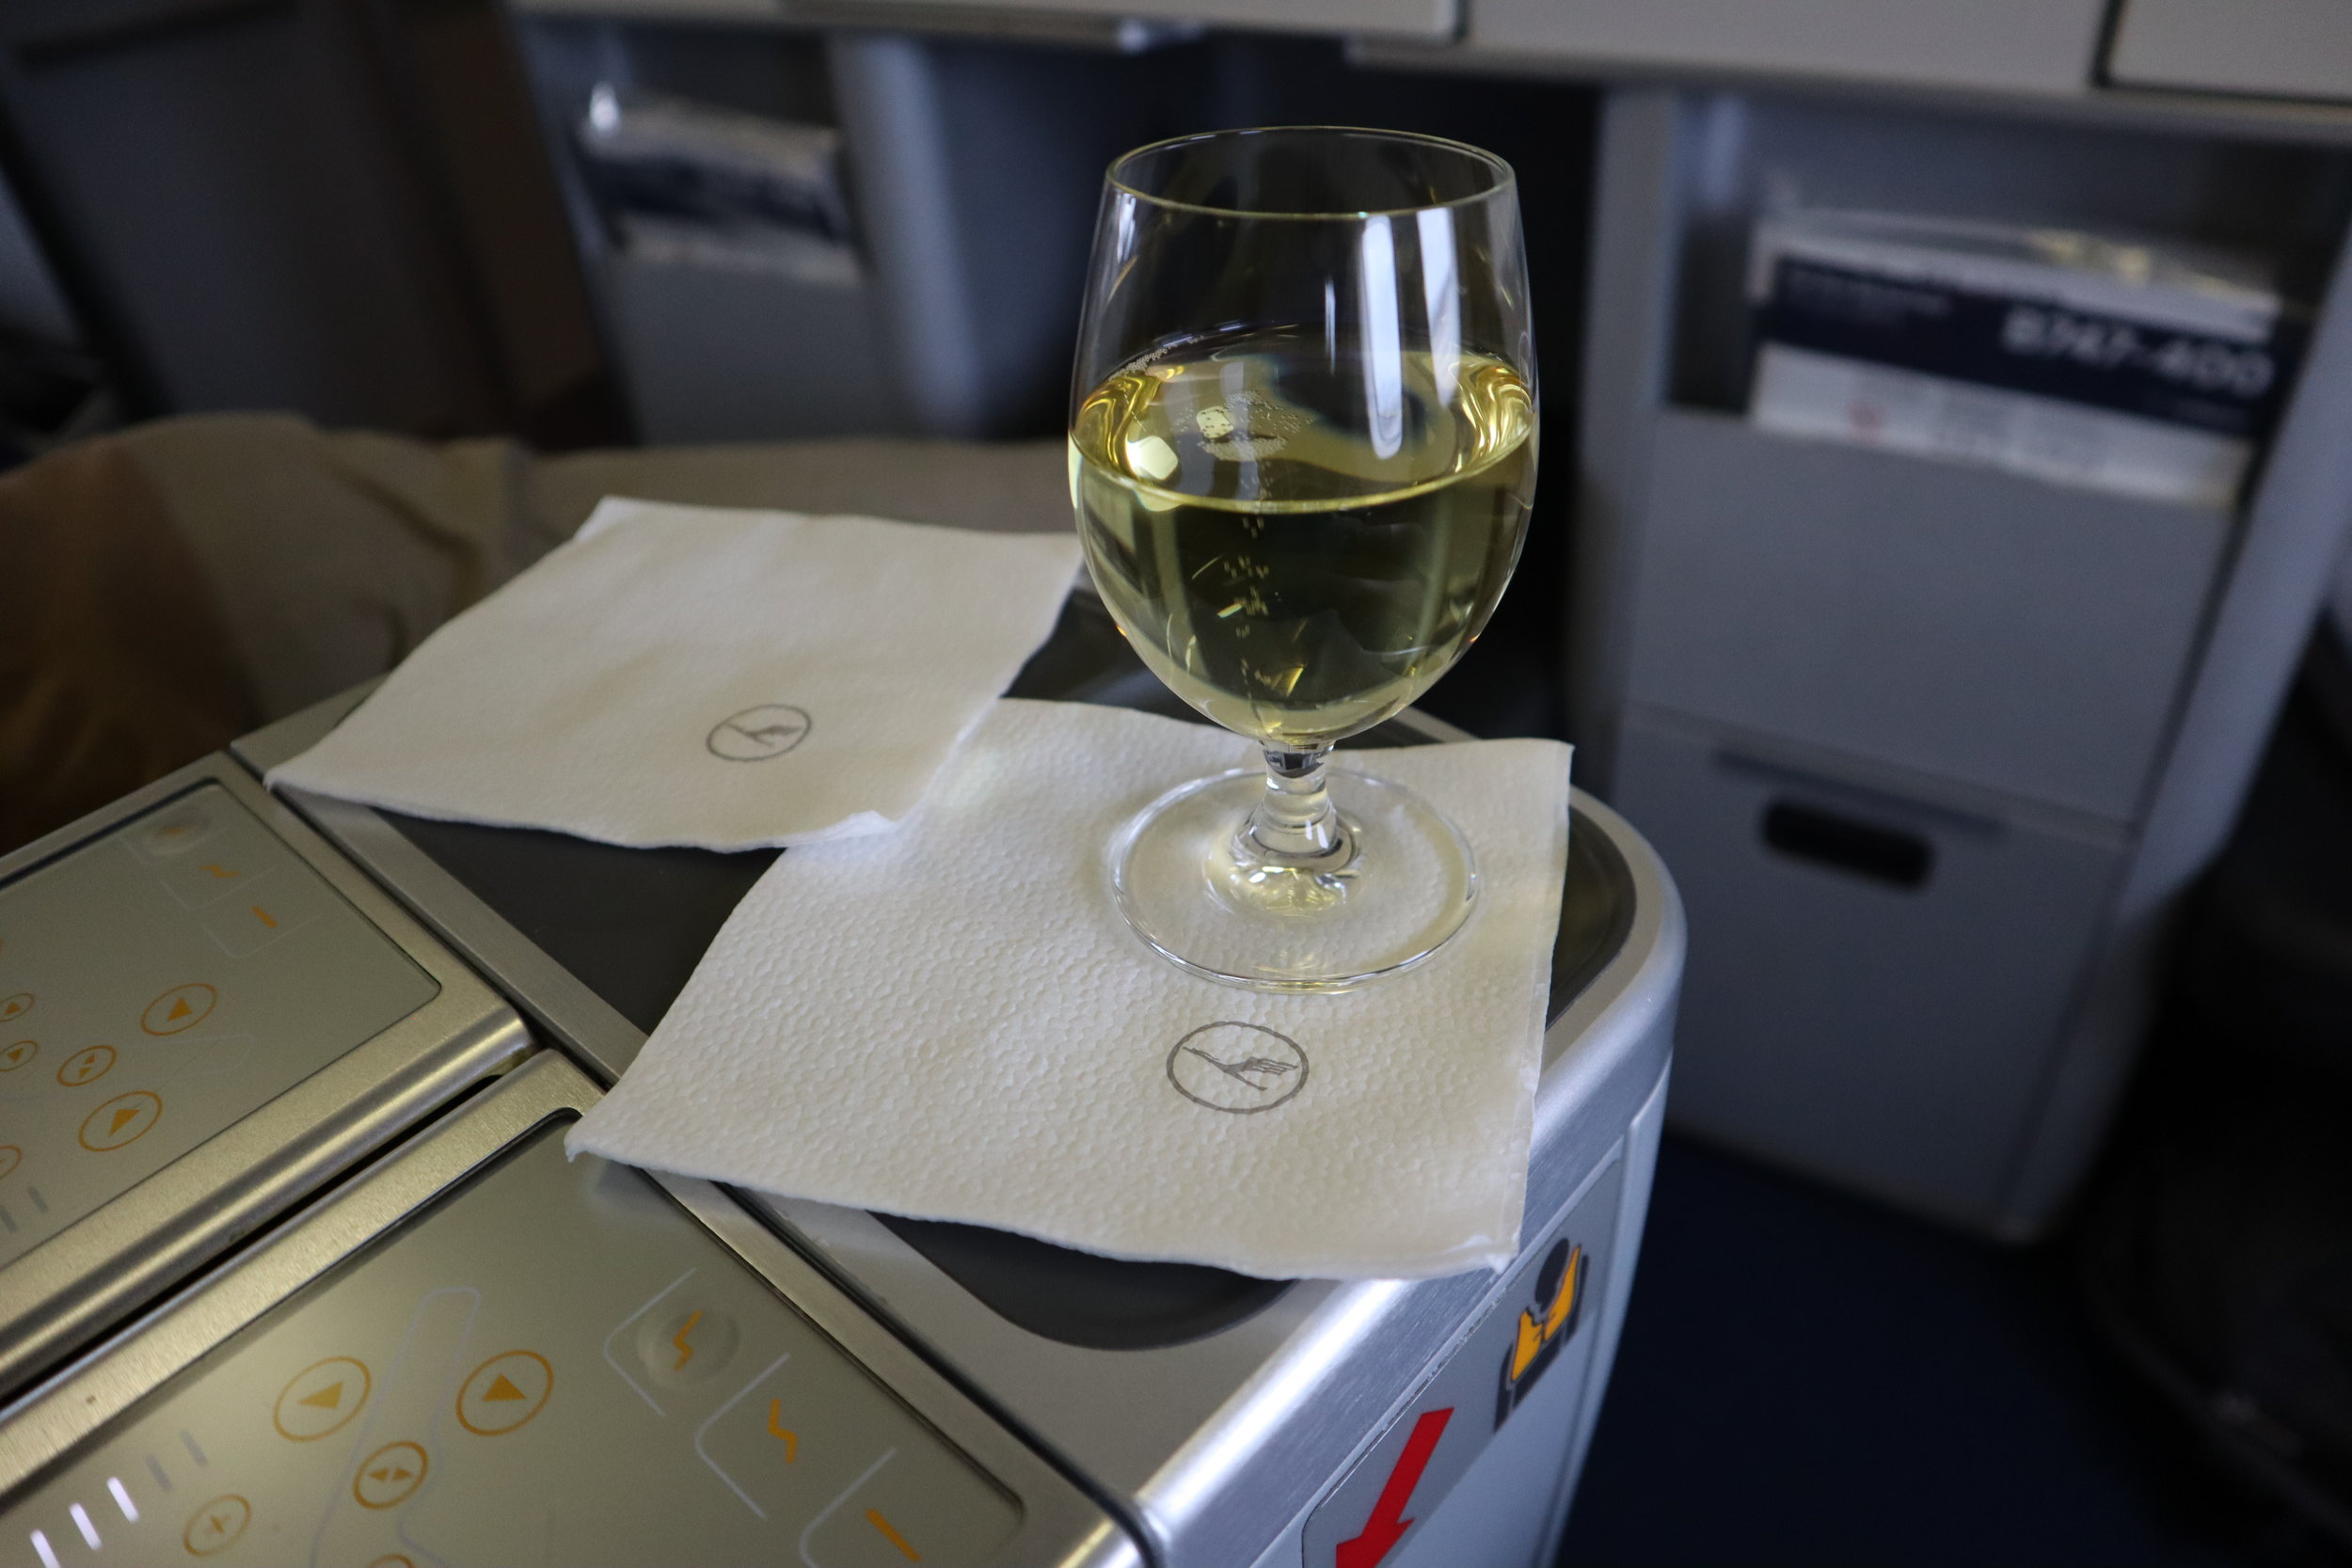 Lufthansa 747-400 business class – Welcome champagne